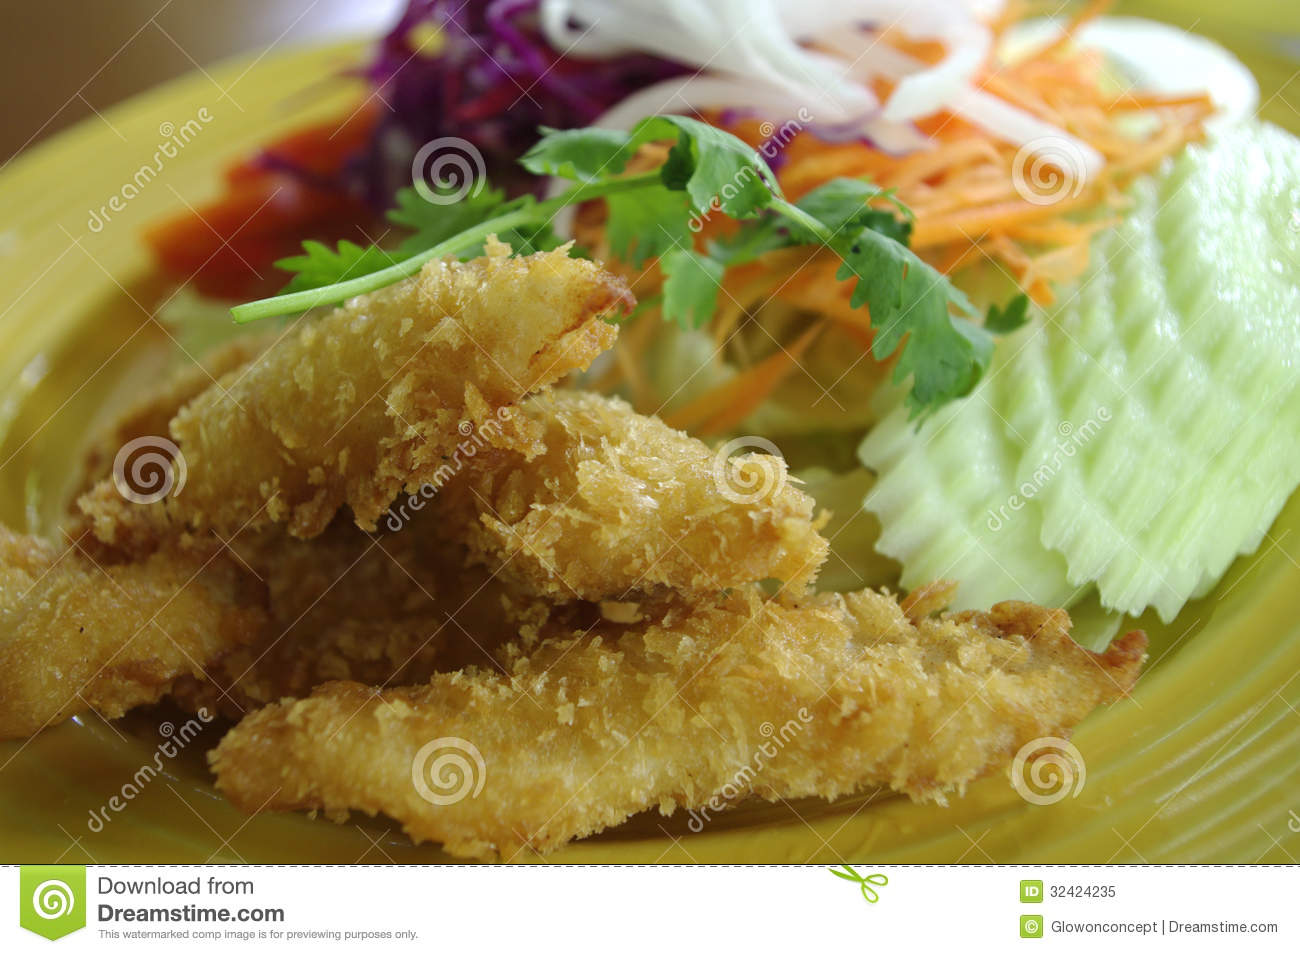 Fried fish and salad dish royalty free stock photo image for Fish and salad